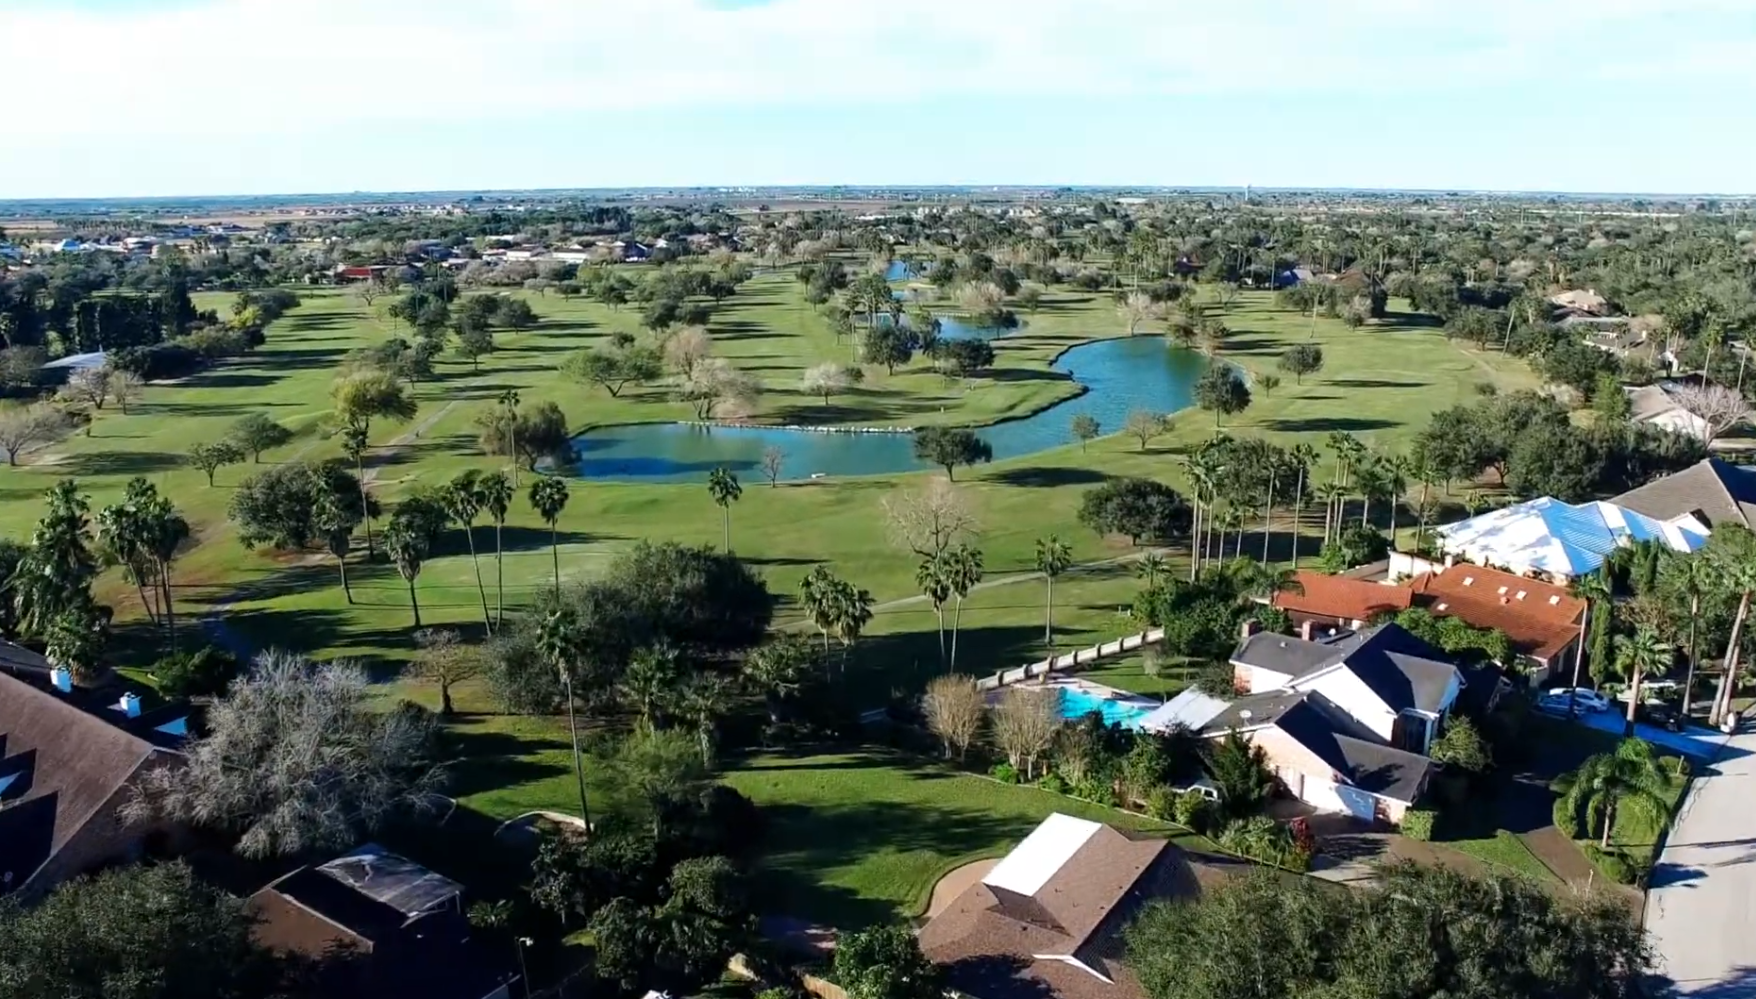 Sky view of properties on Tony Butler golf course